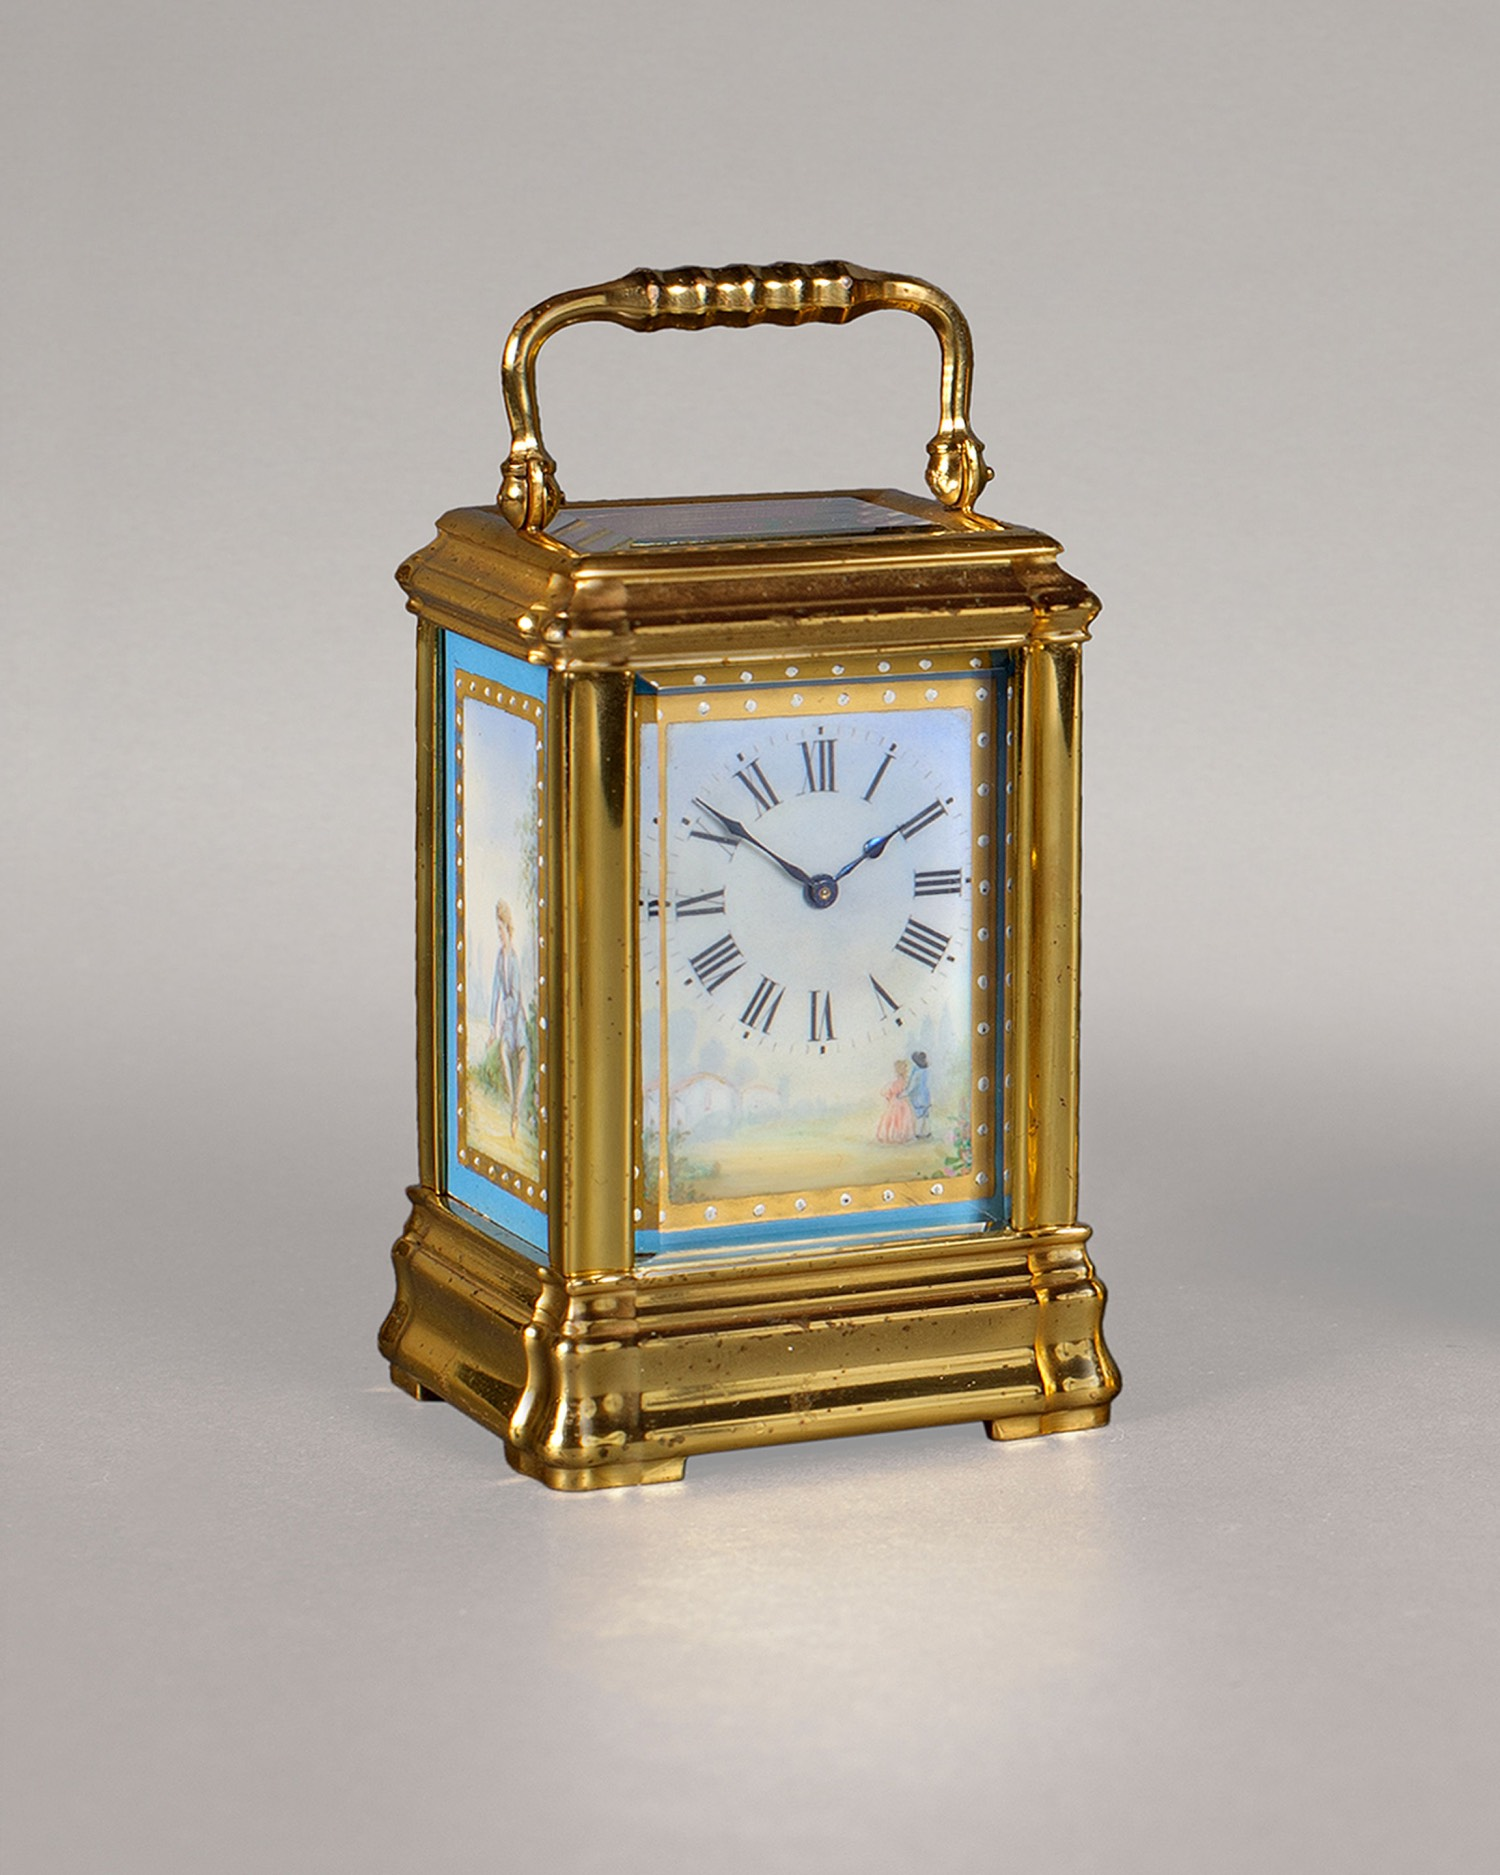 MINIATURE PORCELAIN PANELLED CARRIAGE TIMEPIECE